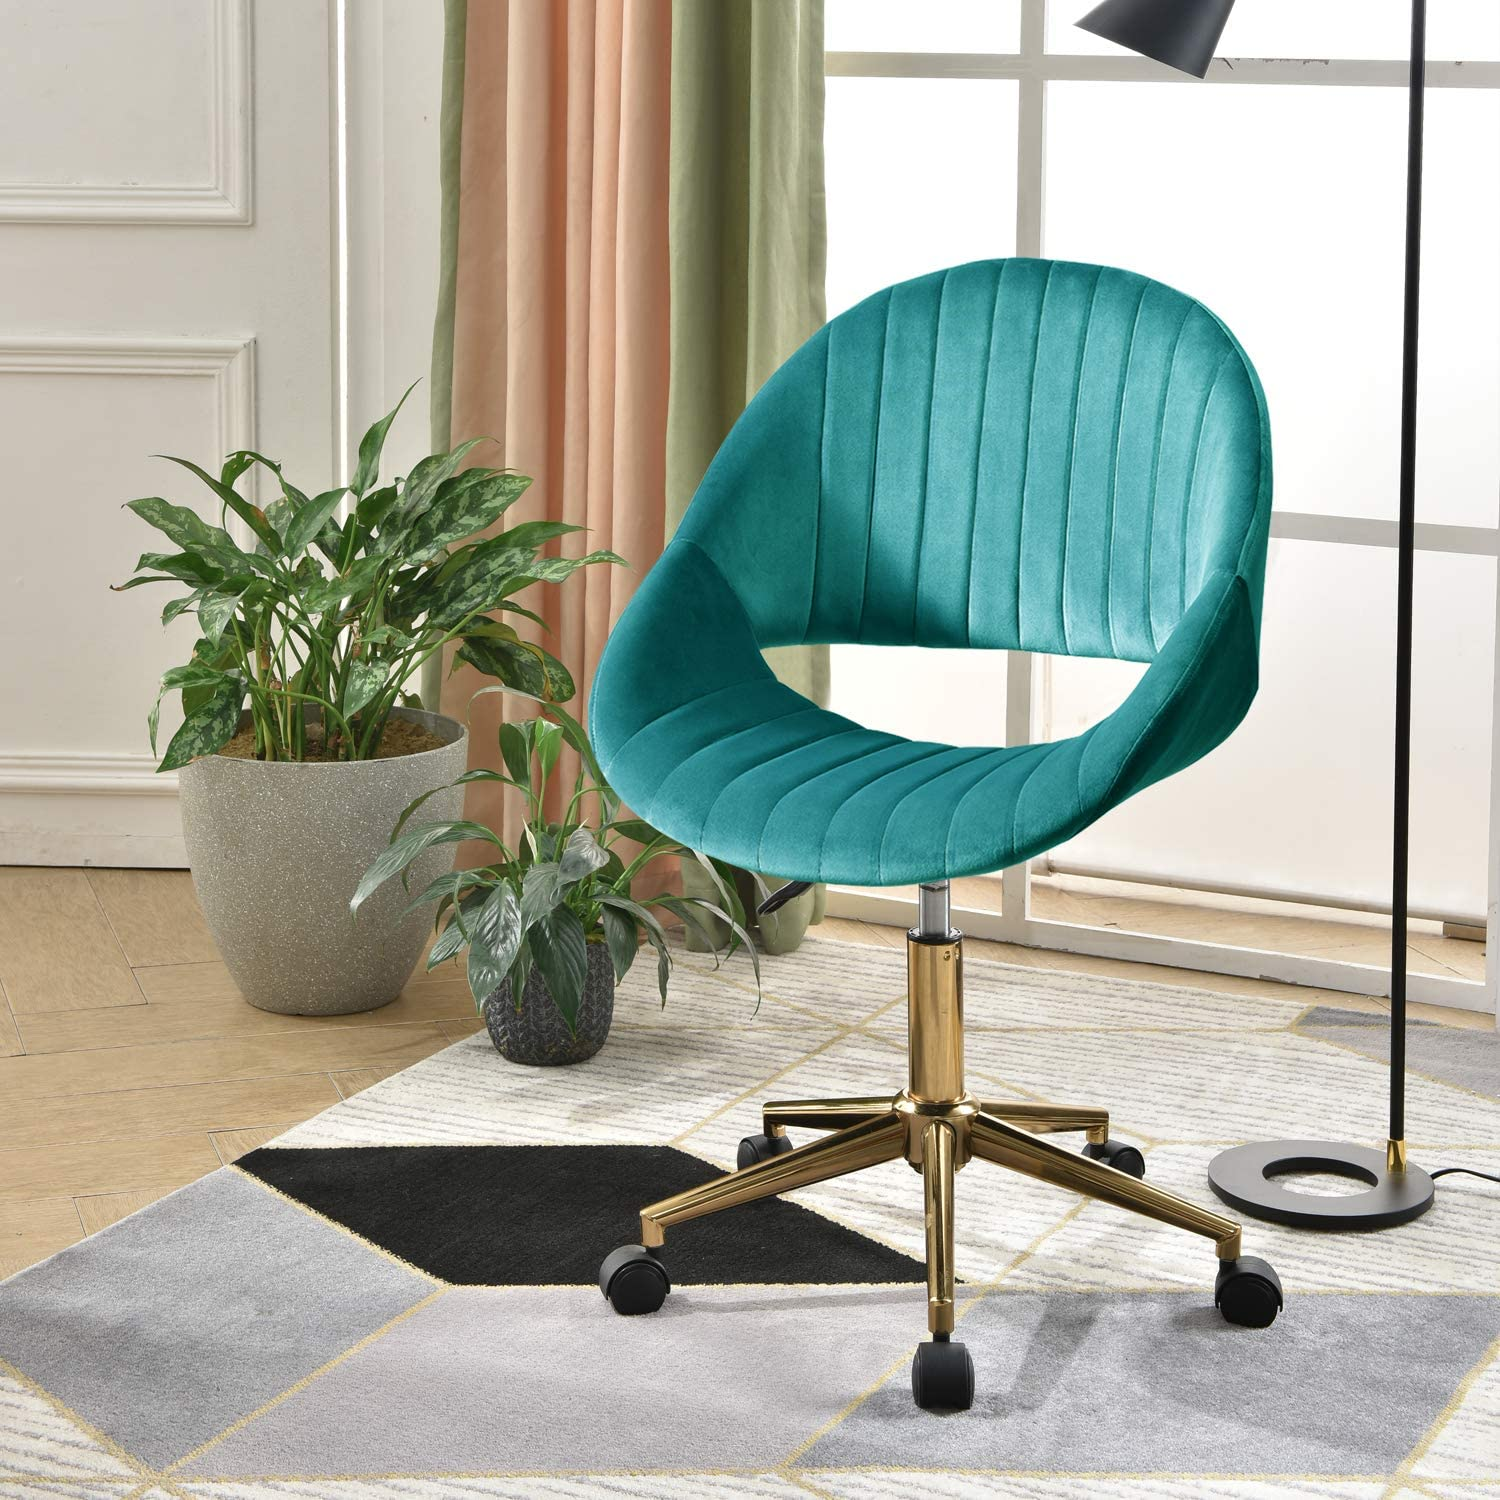 XIZZI Cute Desk Chair,Adjustable Swivel Office Chair for Girl, Velvet Chair with Wheels (Malachite Green-Golden Frame)